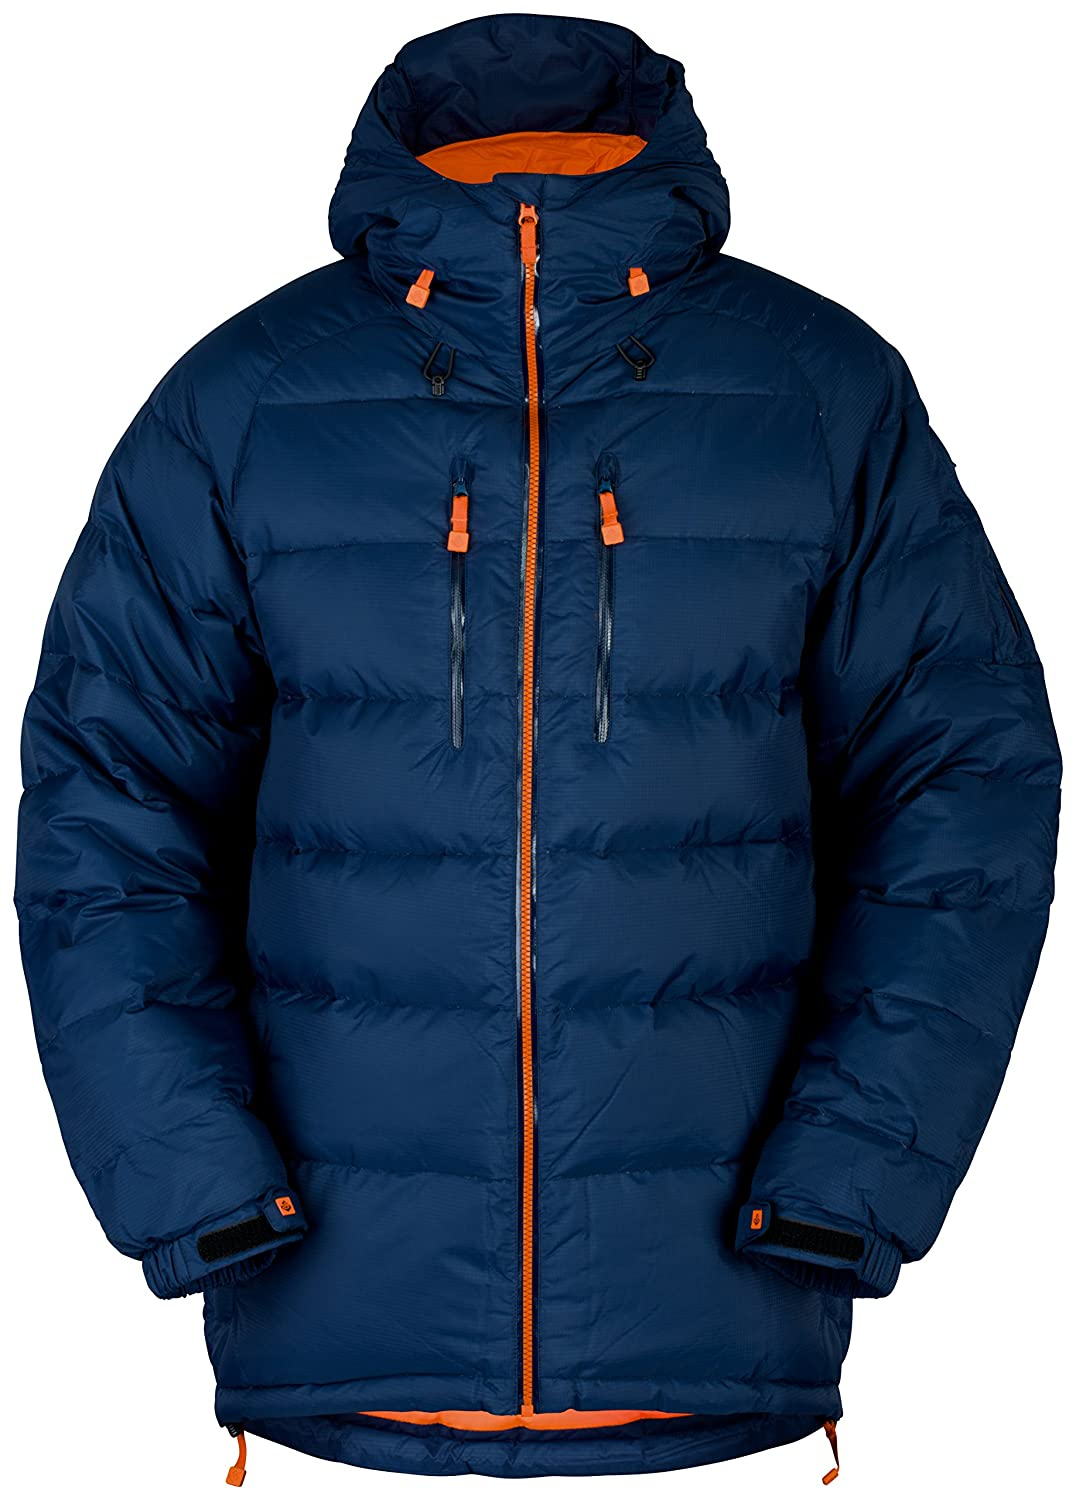 Sweet Protection Herren Ski Sinner Jacket jetzt bestellen